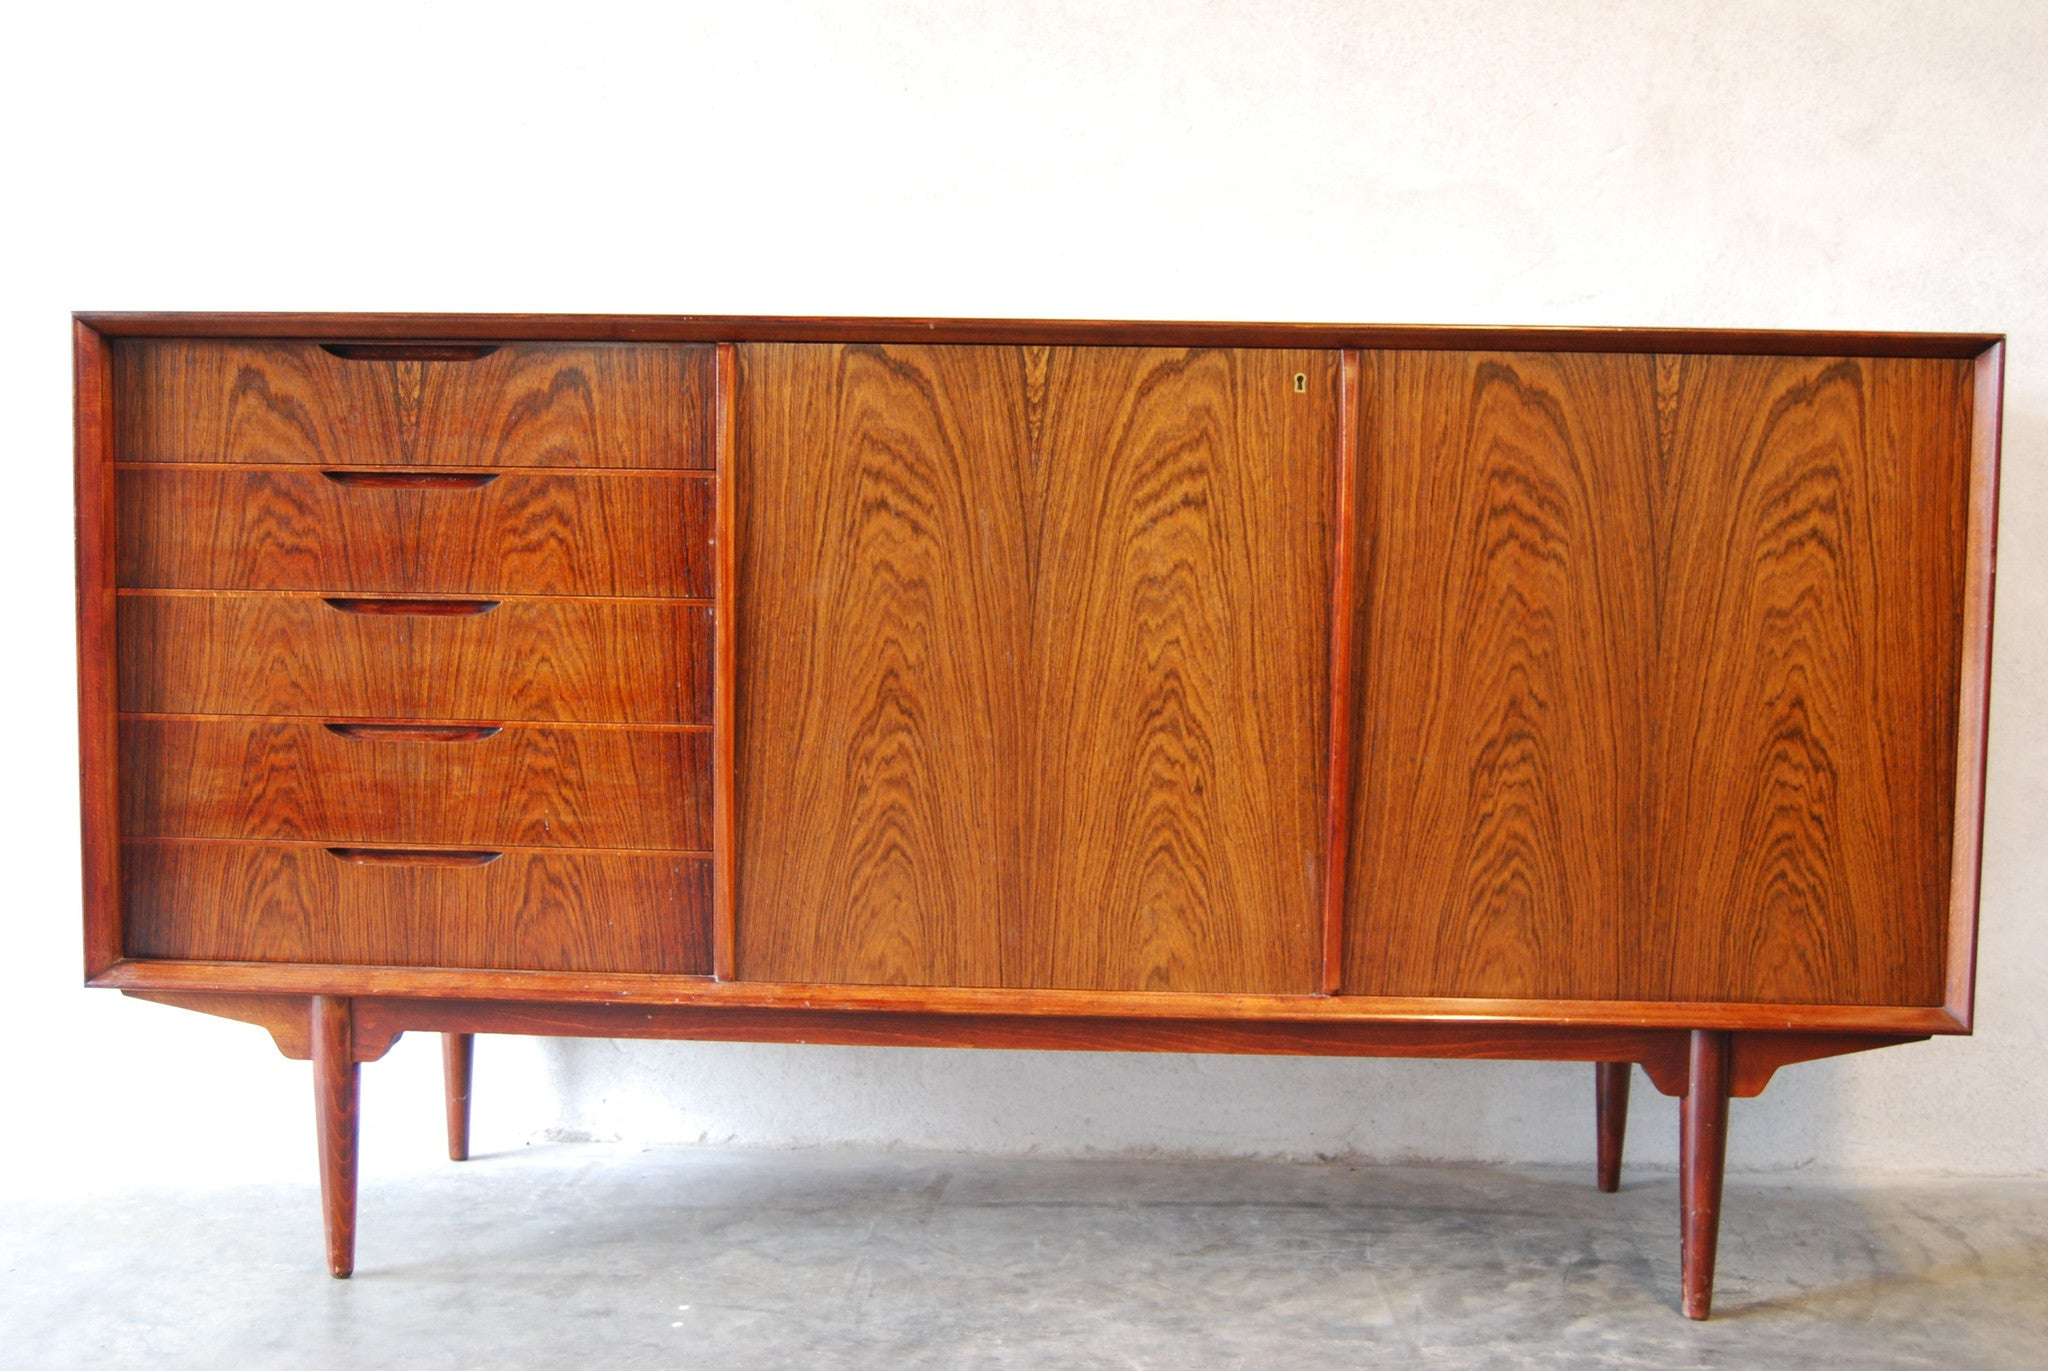 Rosewood sideboard by Seffle